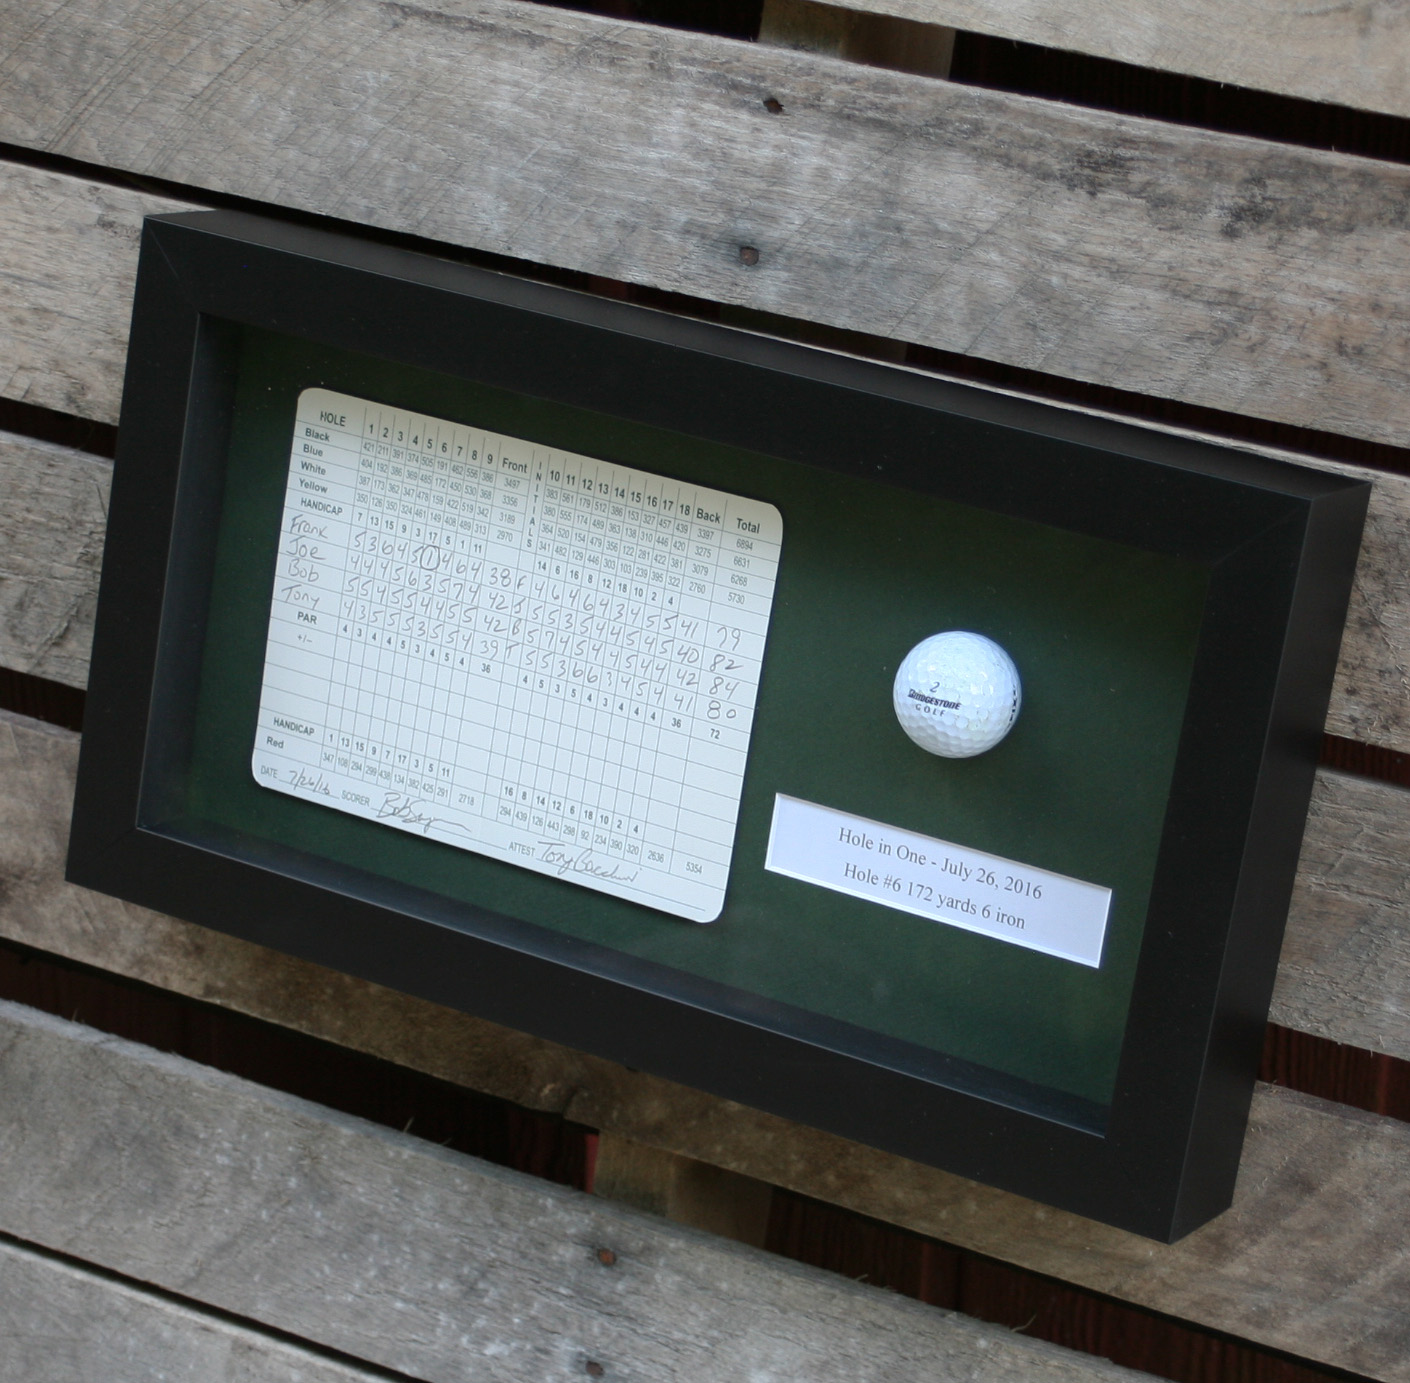 Use These High Quality Golf Scorecard Frames For Tournament Prizes A Hole In One Commemorative